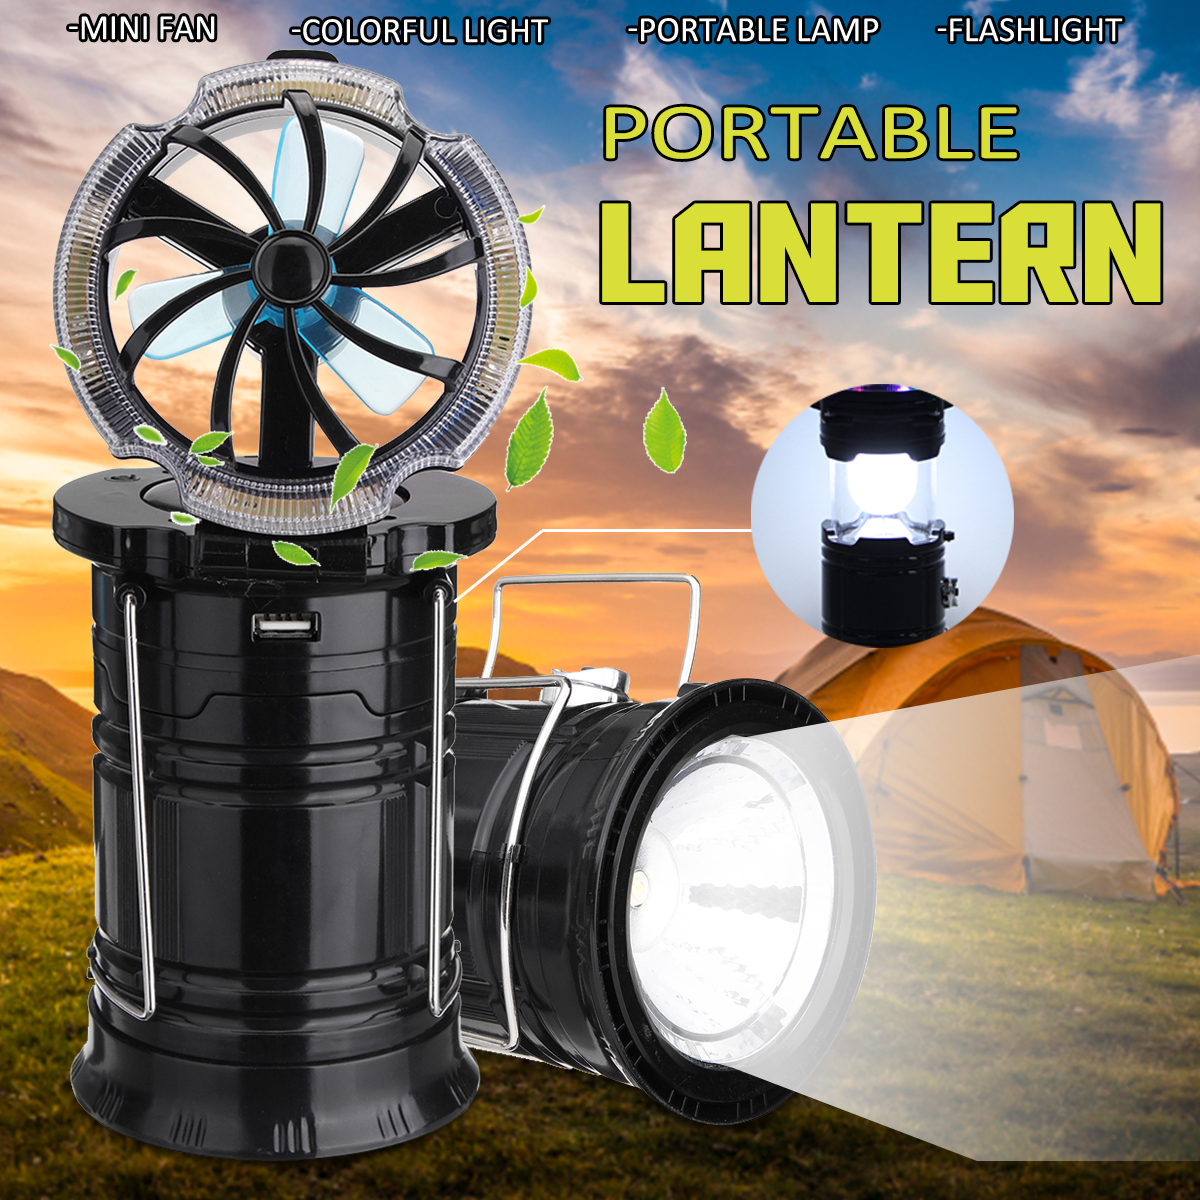 3 In1 LED Light Flashlight Mini Fan Hanging Lantern Collapsible Camping Emergenc Outdoor Travel Tent Portable Stretch Lamp 2 in 1 camping ceiling fan light hanging tent lamp lantern outdoor 18 led lamp s08 drop ship